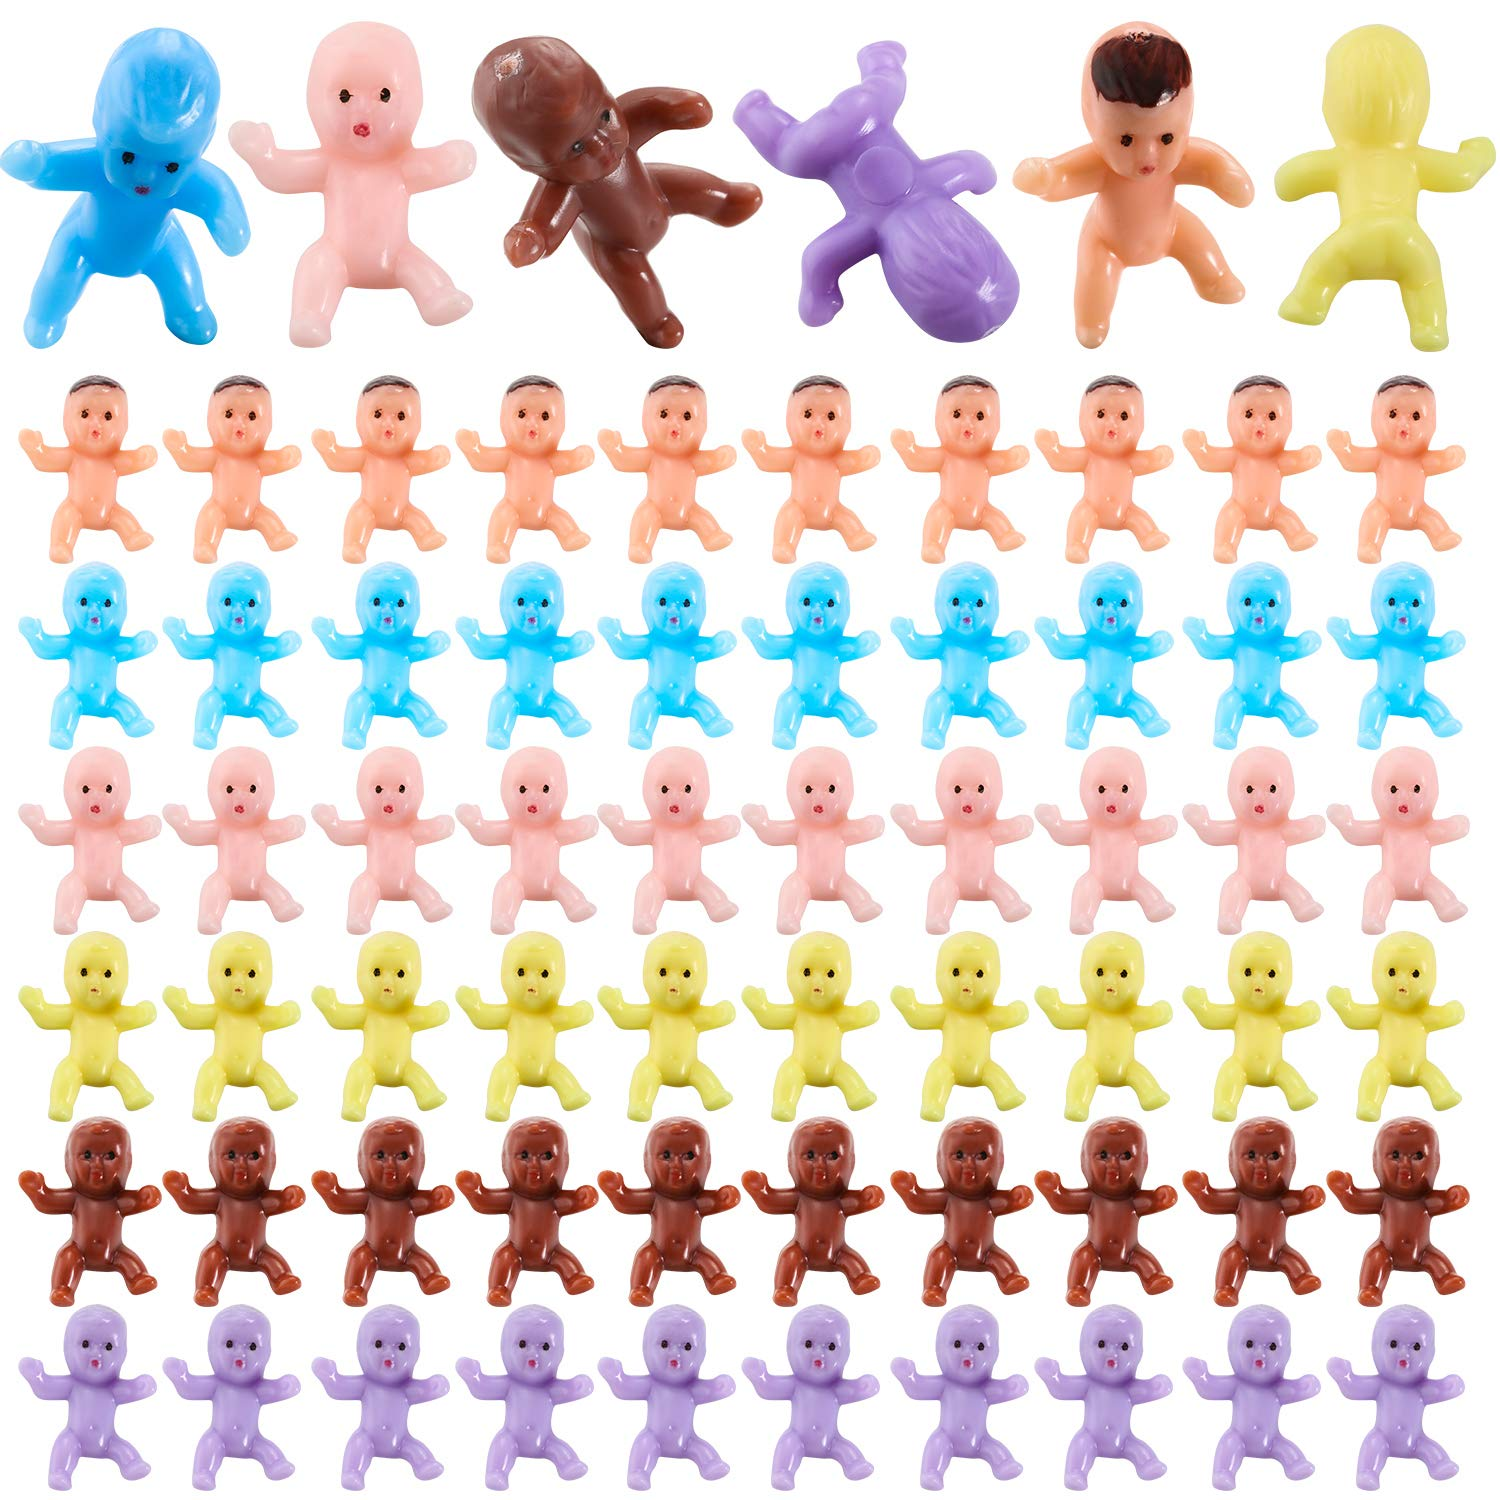 360 Pieces Mini Plastic Babies Tiny Baby Dolls for Ice Cube Game Party Decorations Baby Shower Party Favors Full Moon Gifts (Latin, Dark Brown, Pink, Yellow, Purple, Blue)